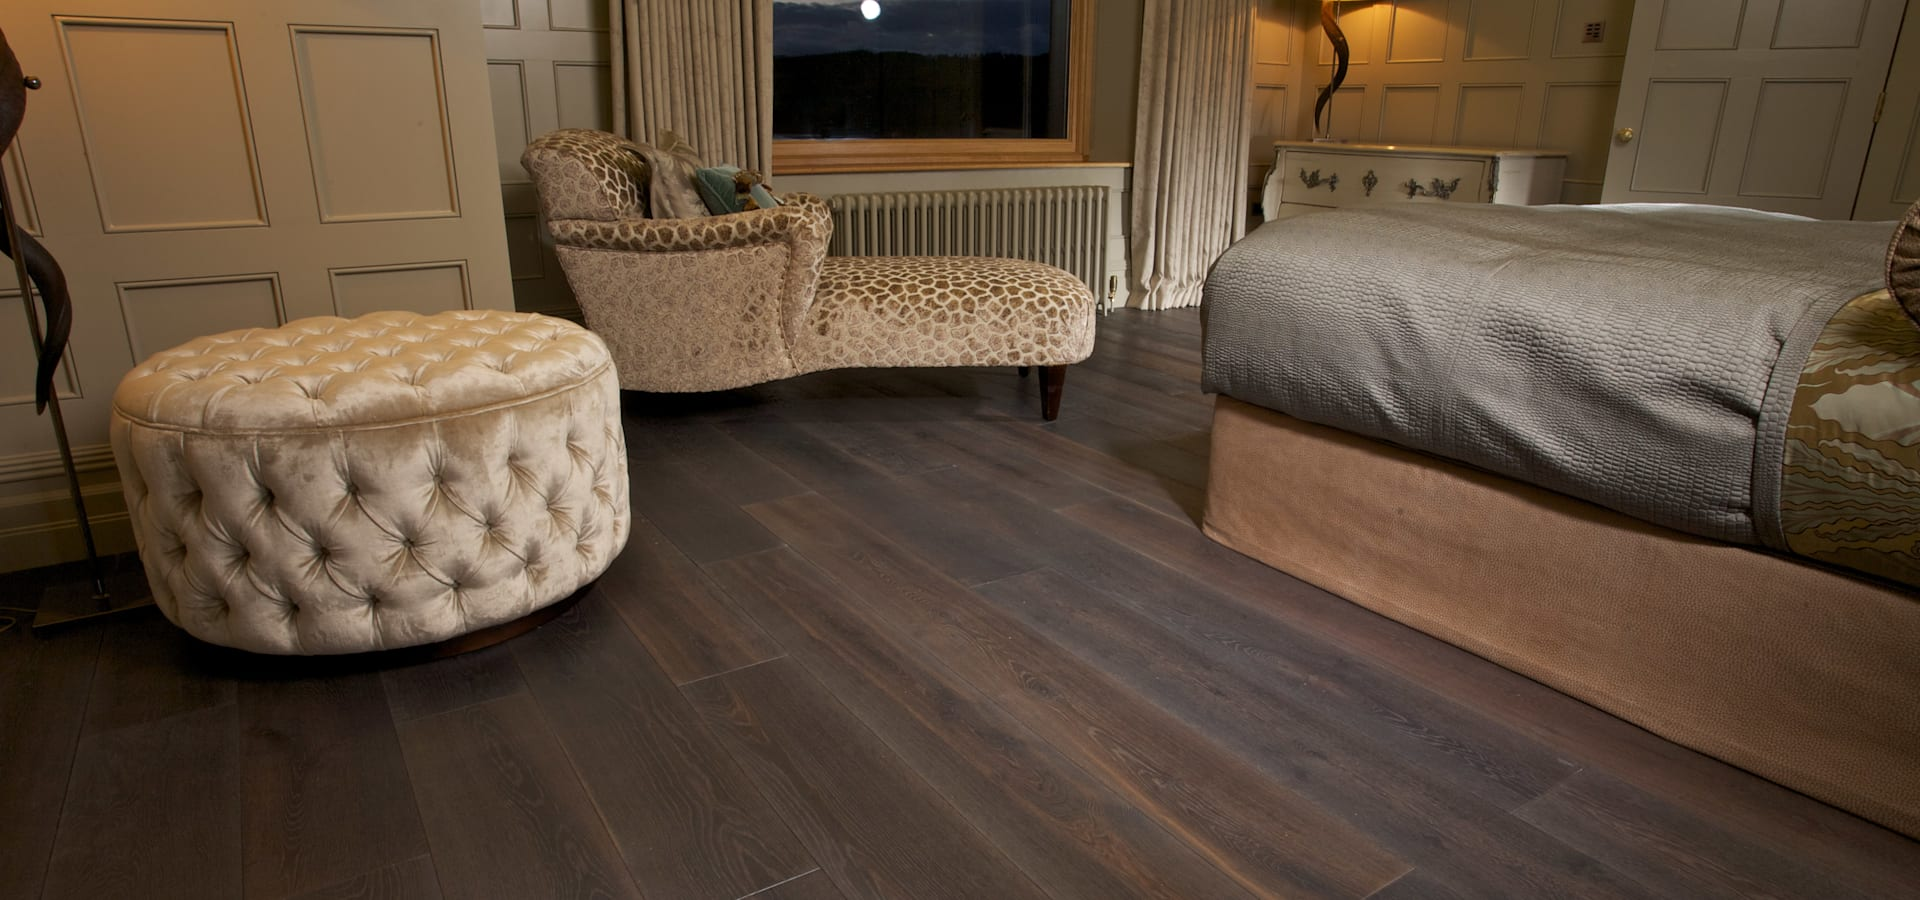 Woodenfloors.uk.com